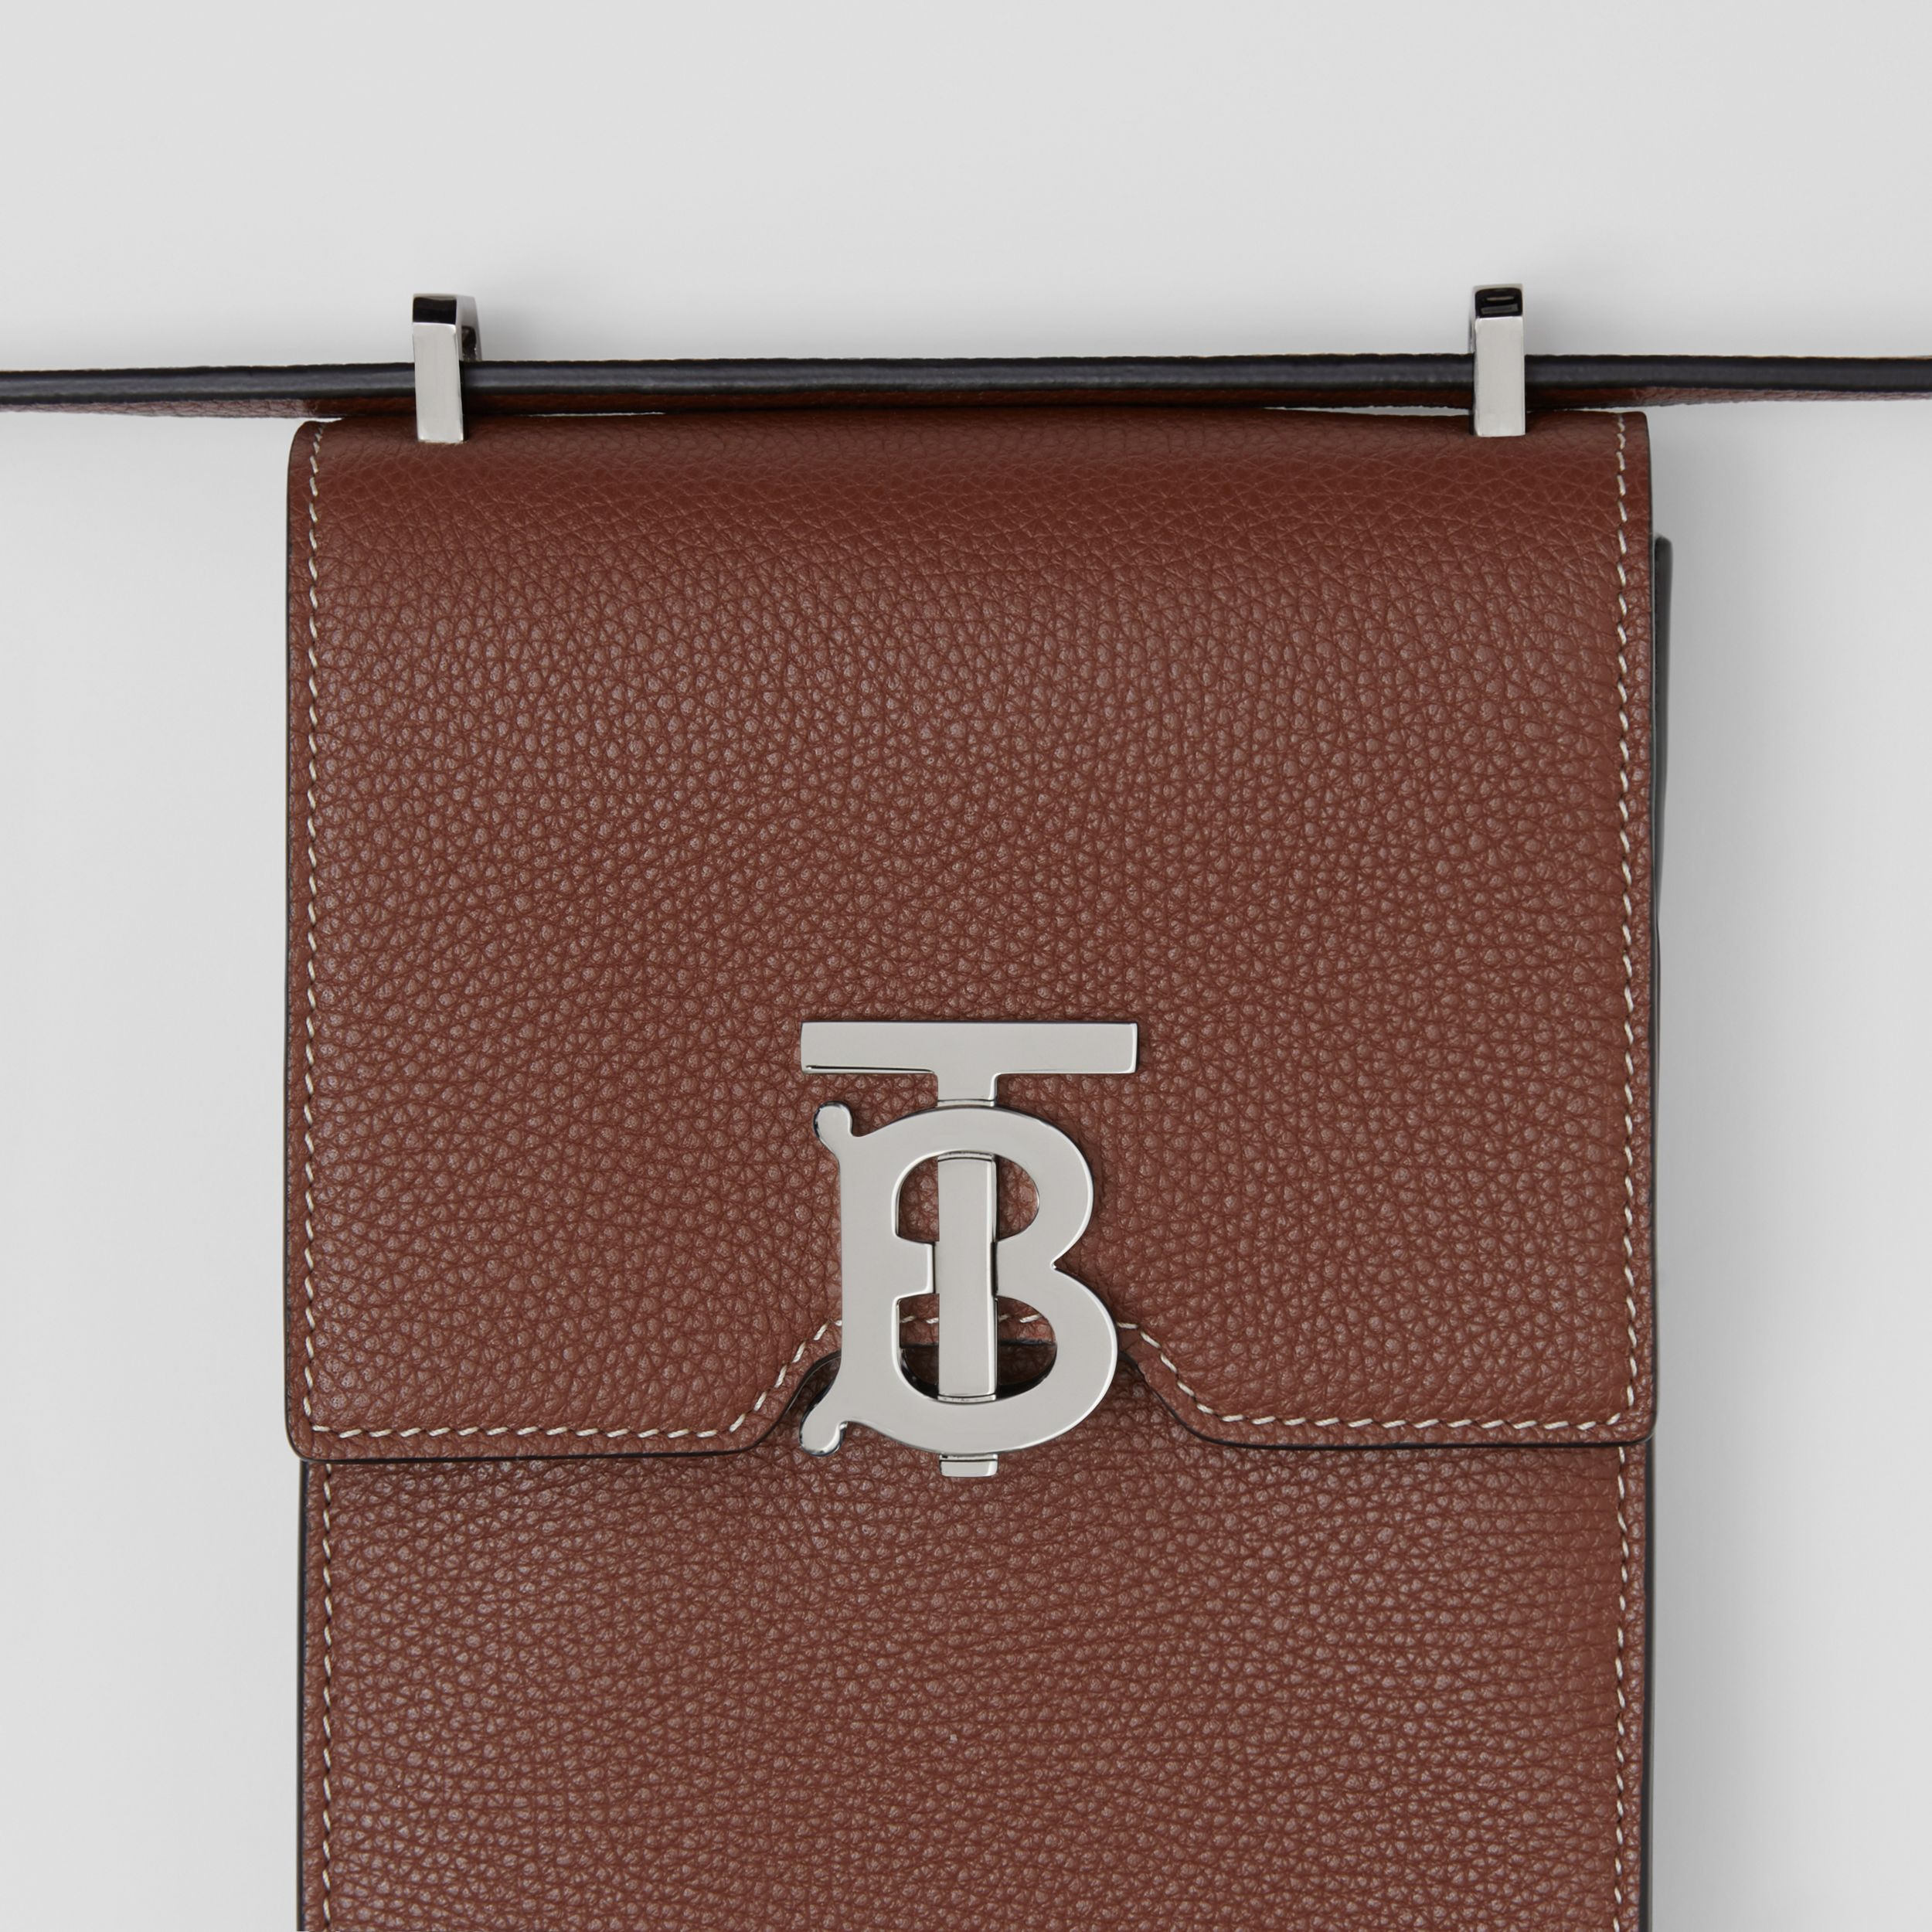 Grainy Leather Robin Bag in Tan | Burberry - 2